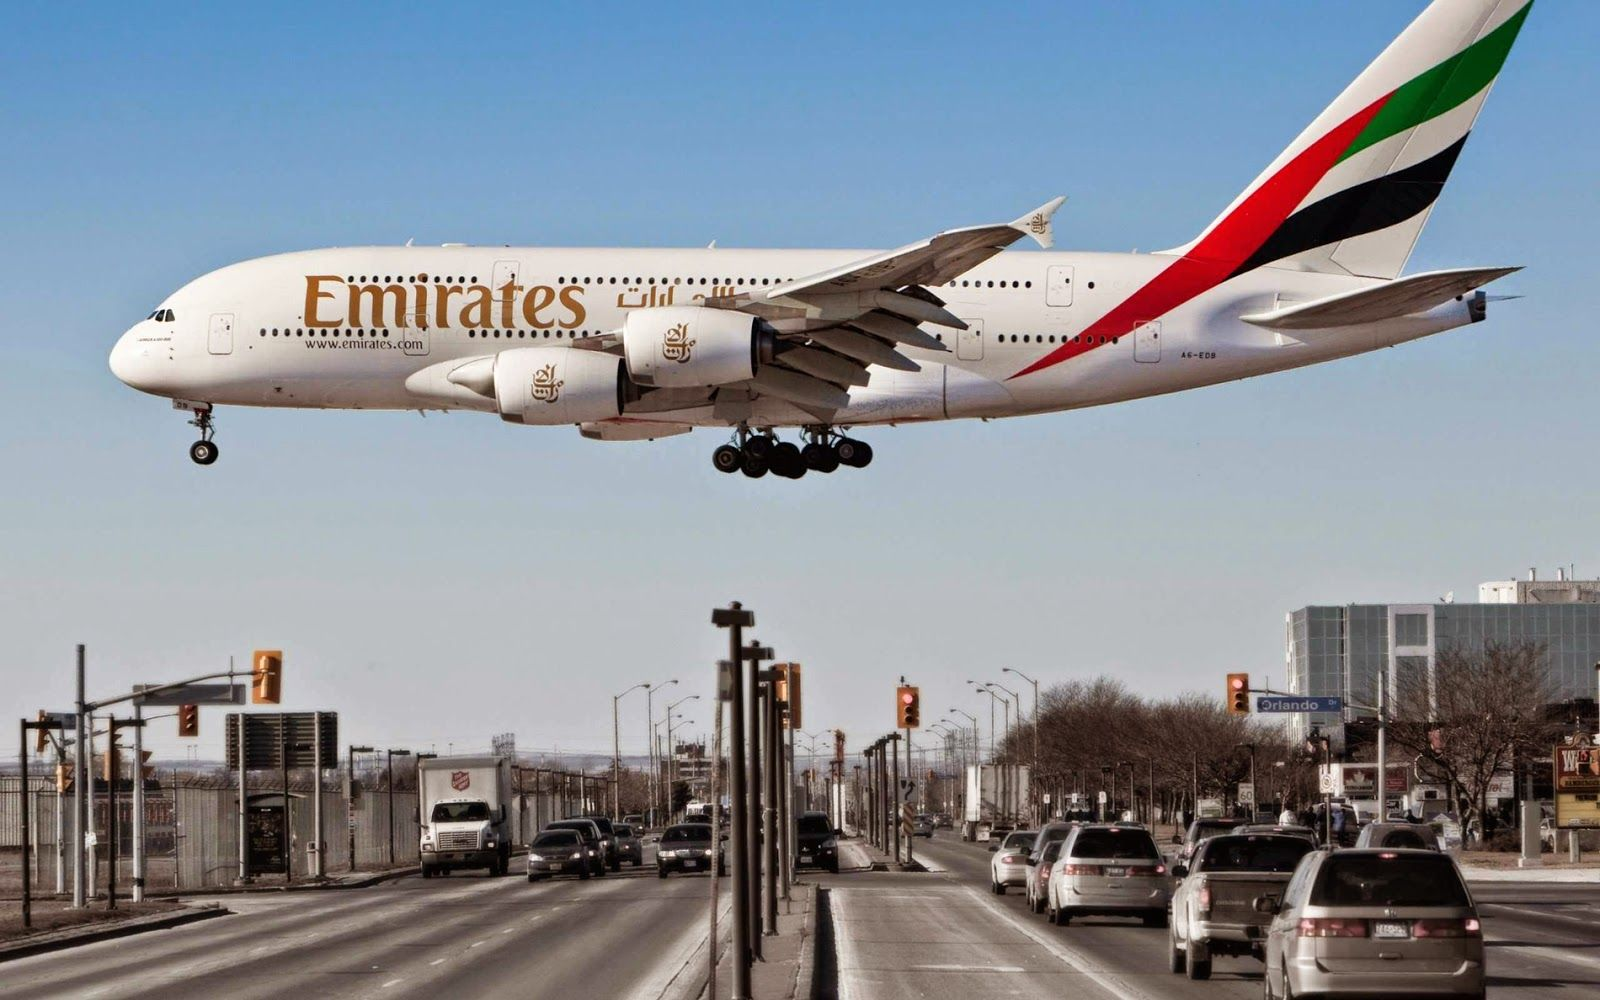 Emirates Airlines inspire travelers around the world with their growing network of worldwide destinations.